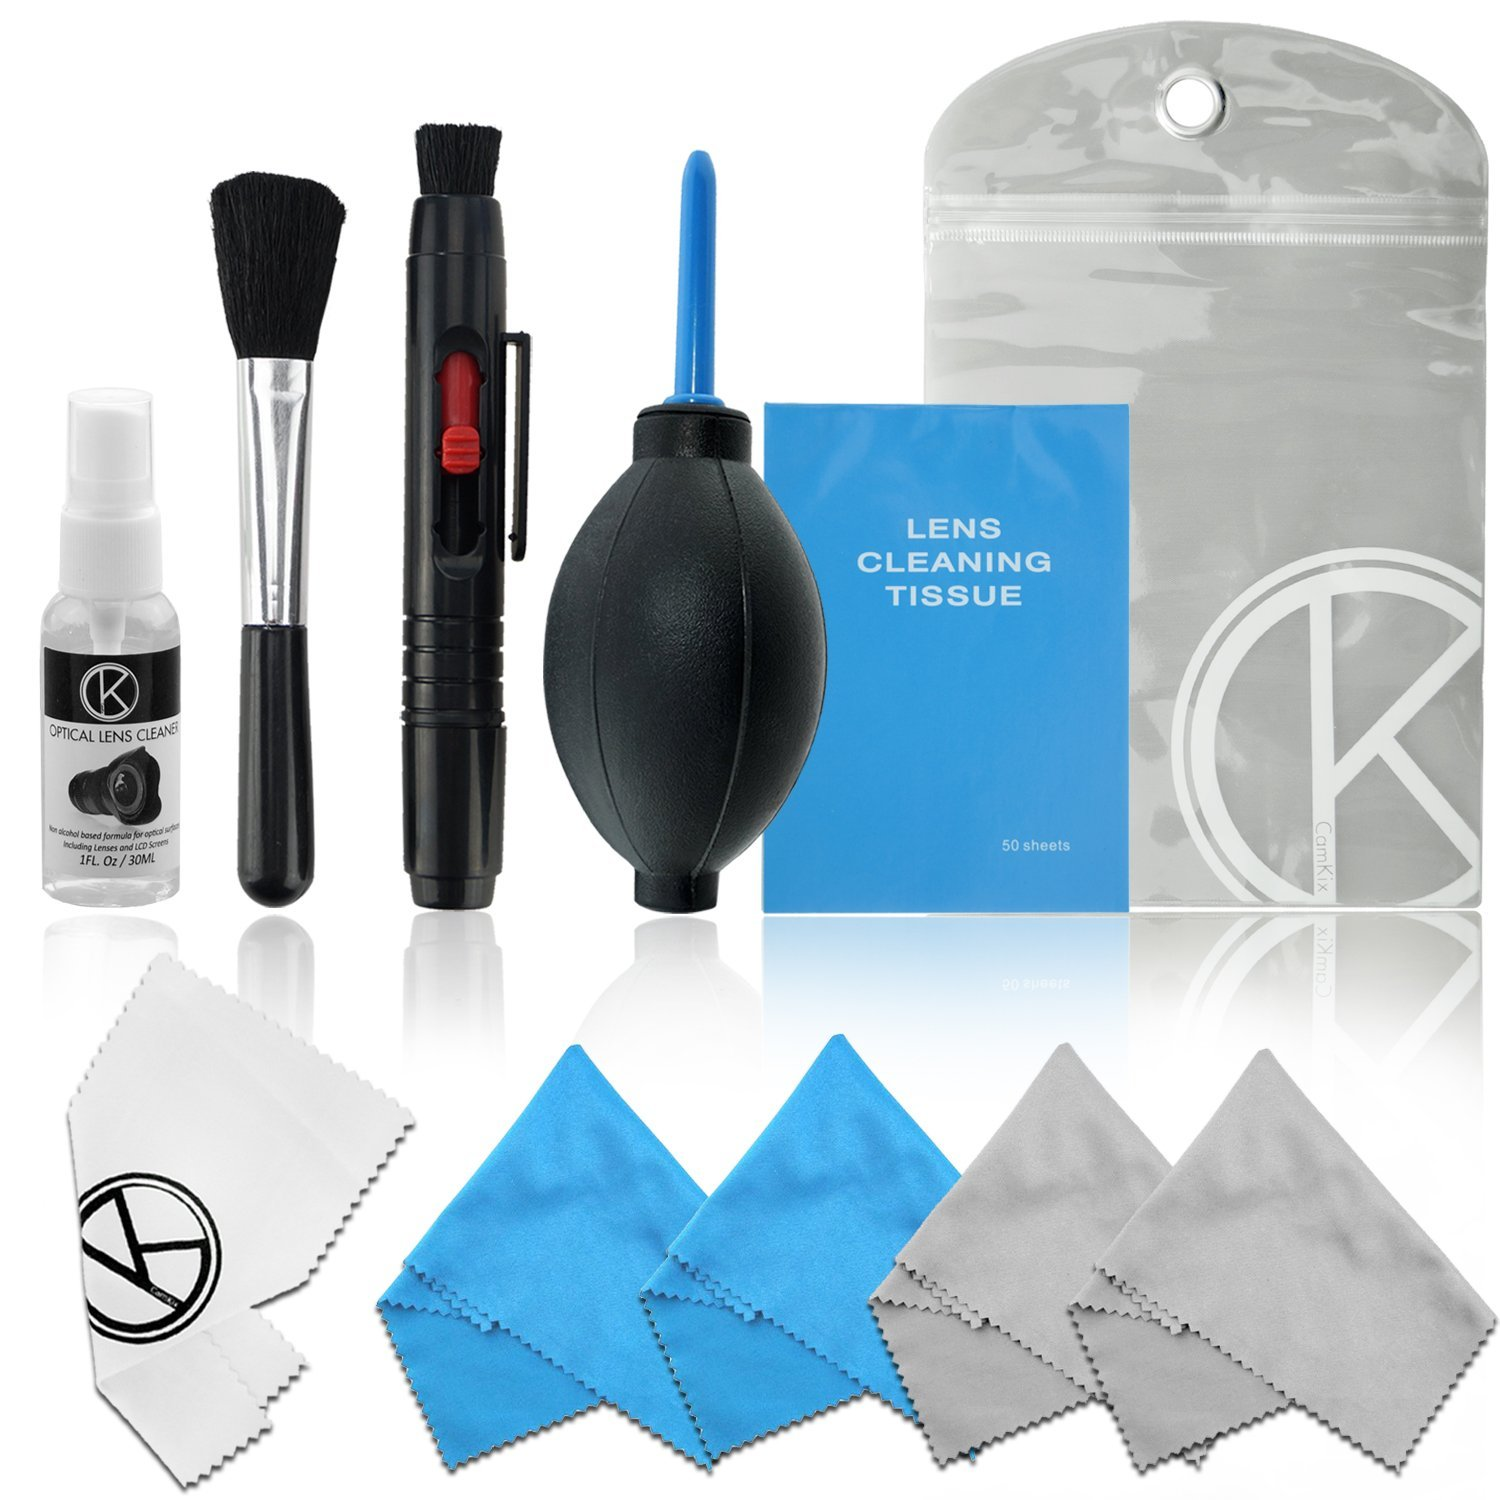 The CamKix Professional Camera Cleaning Kit